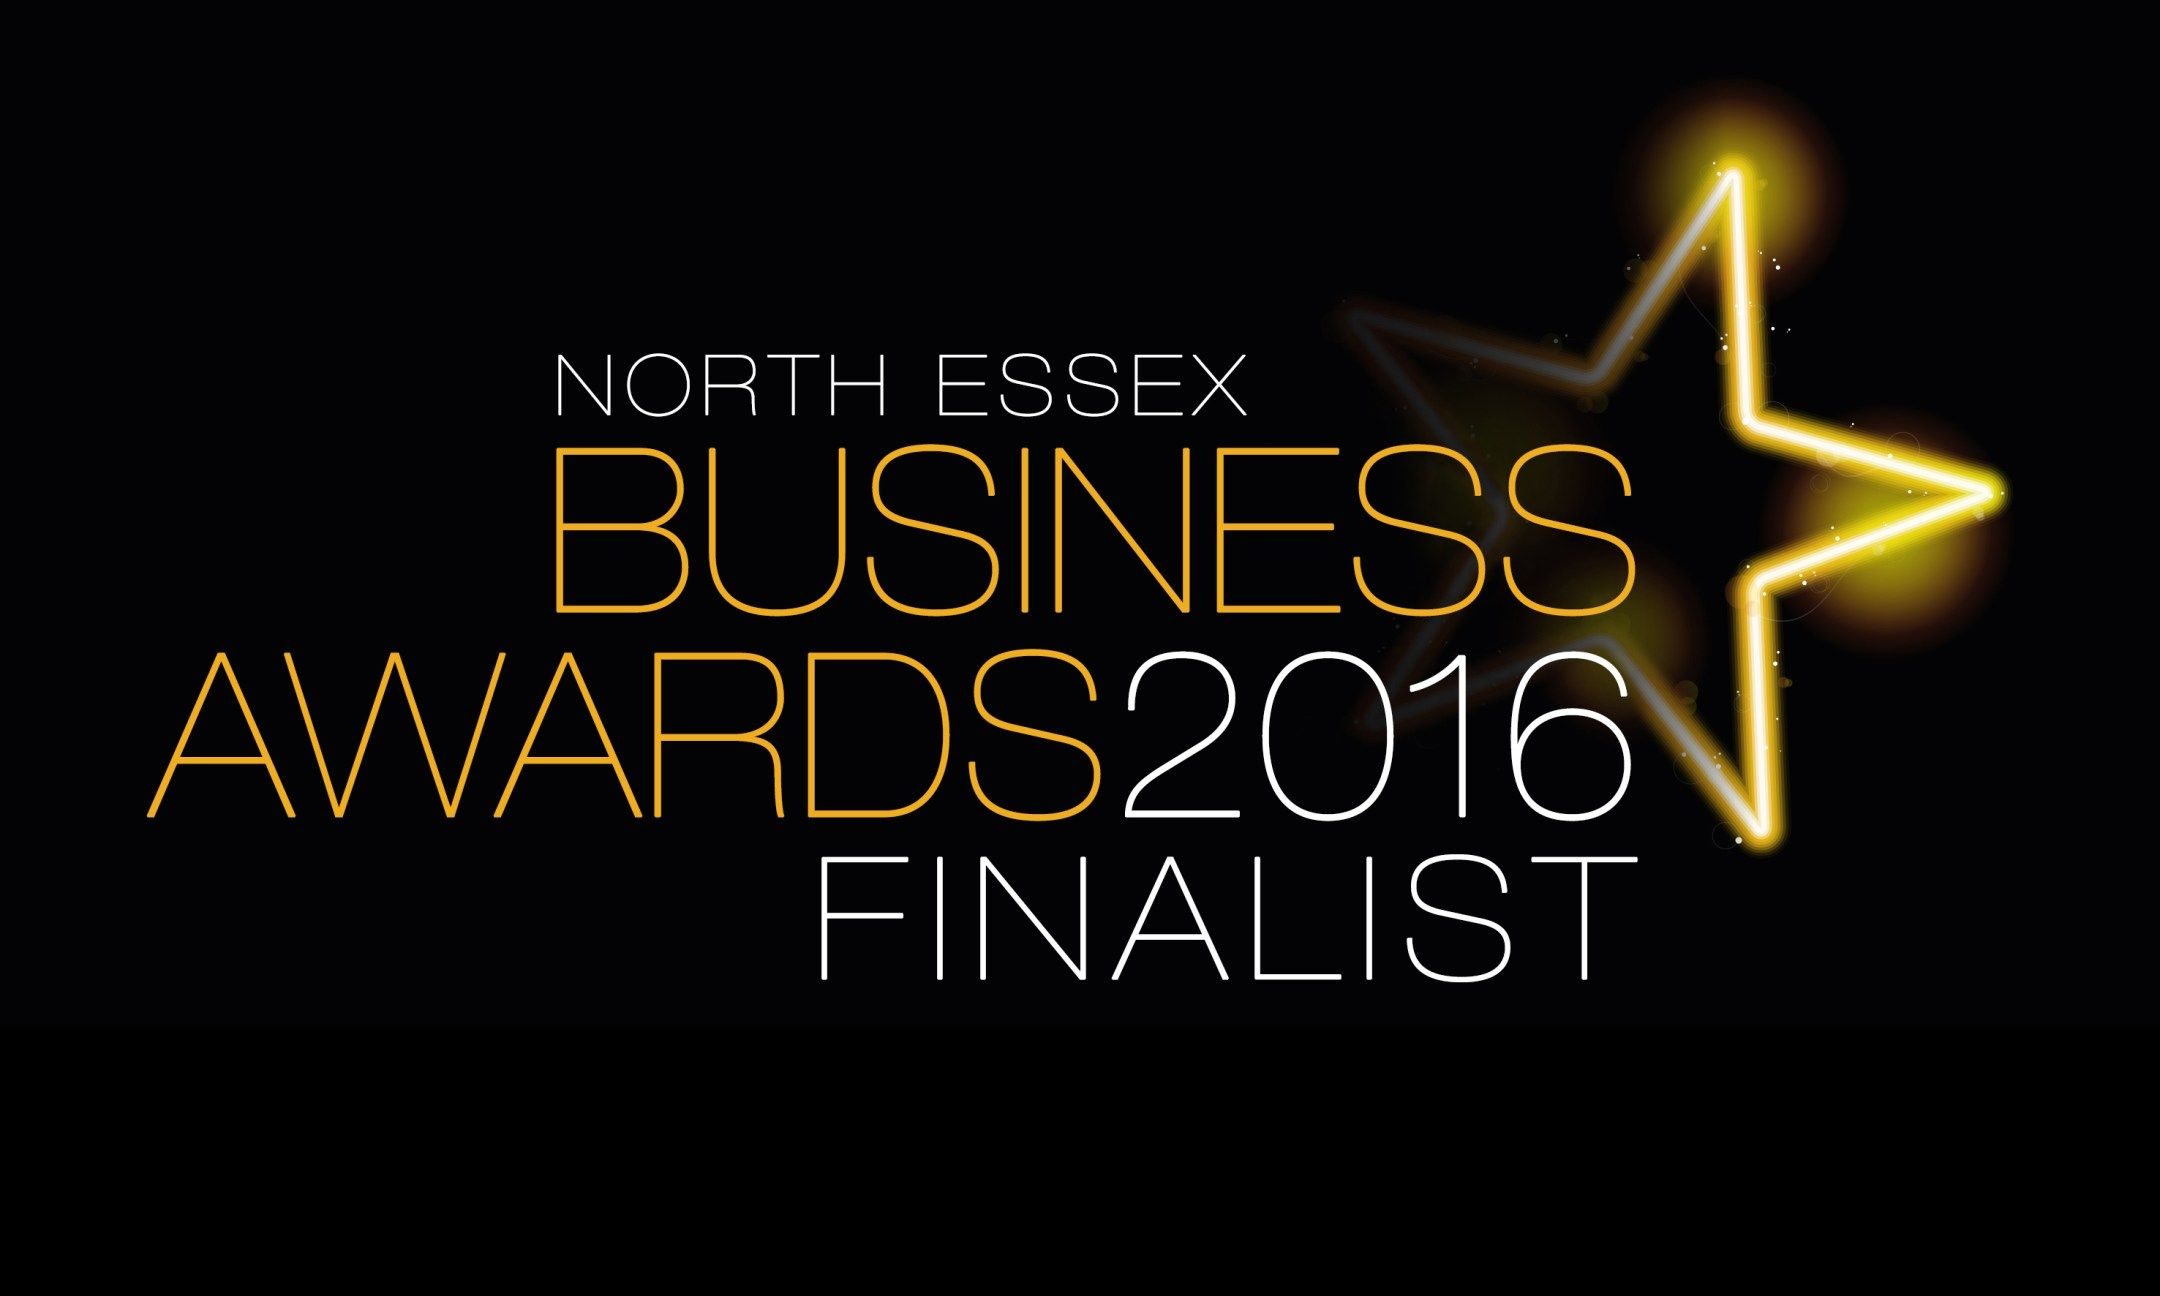 Business awards logo 2016 n essex finalist more articles